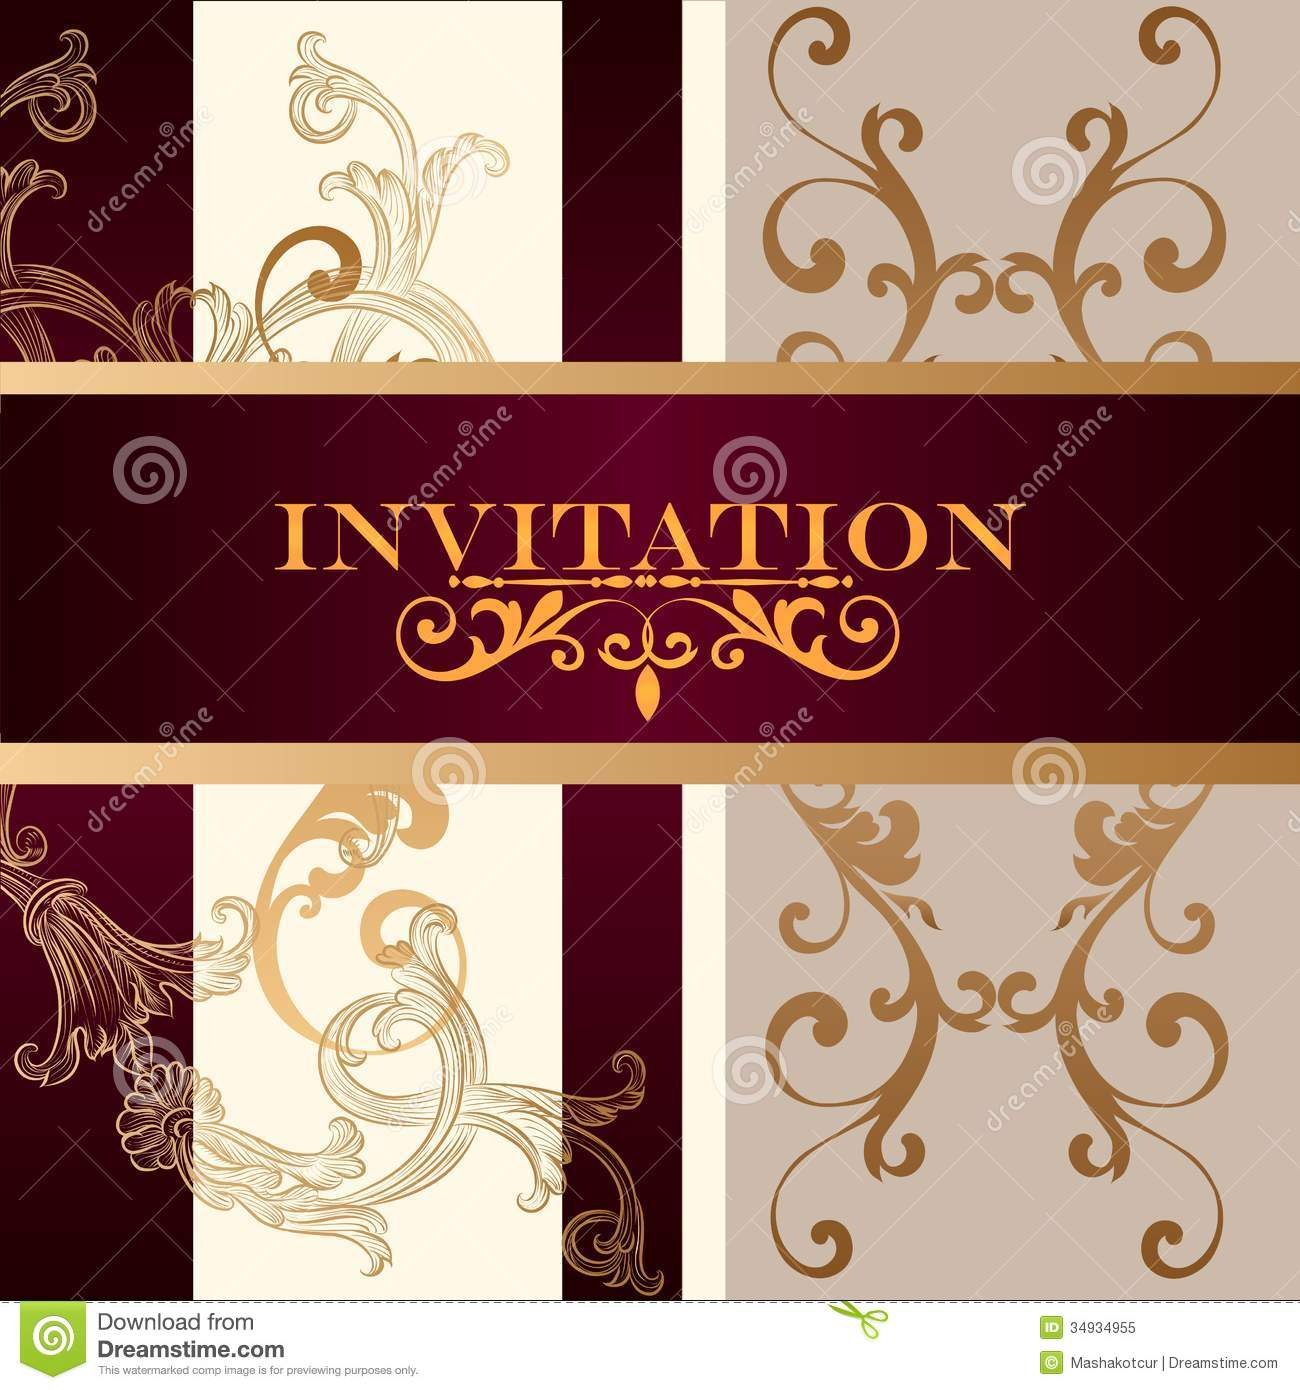 Elegant Invitation Card With Ornament Stock Vector - Illustration of ...